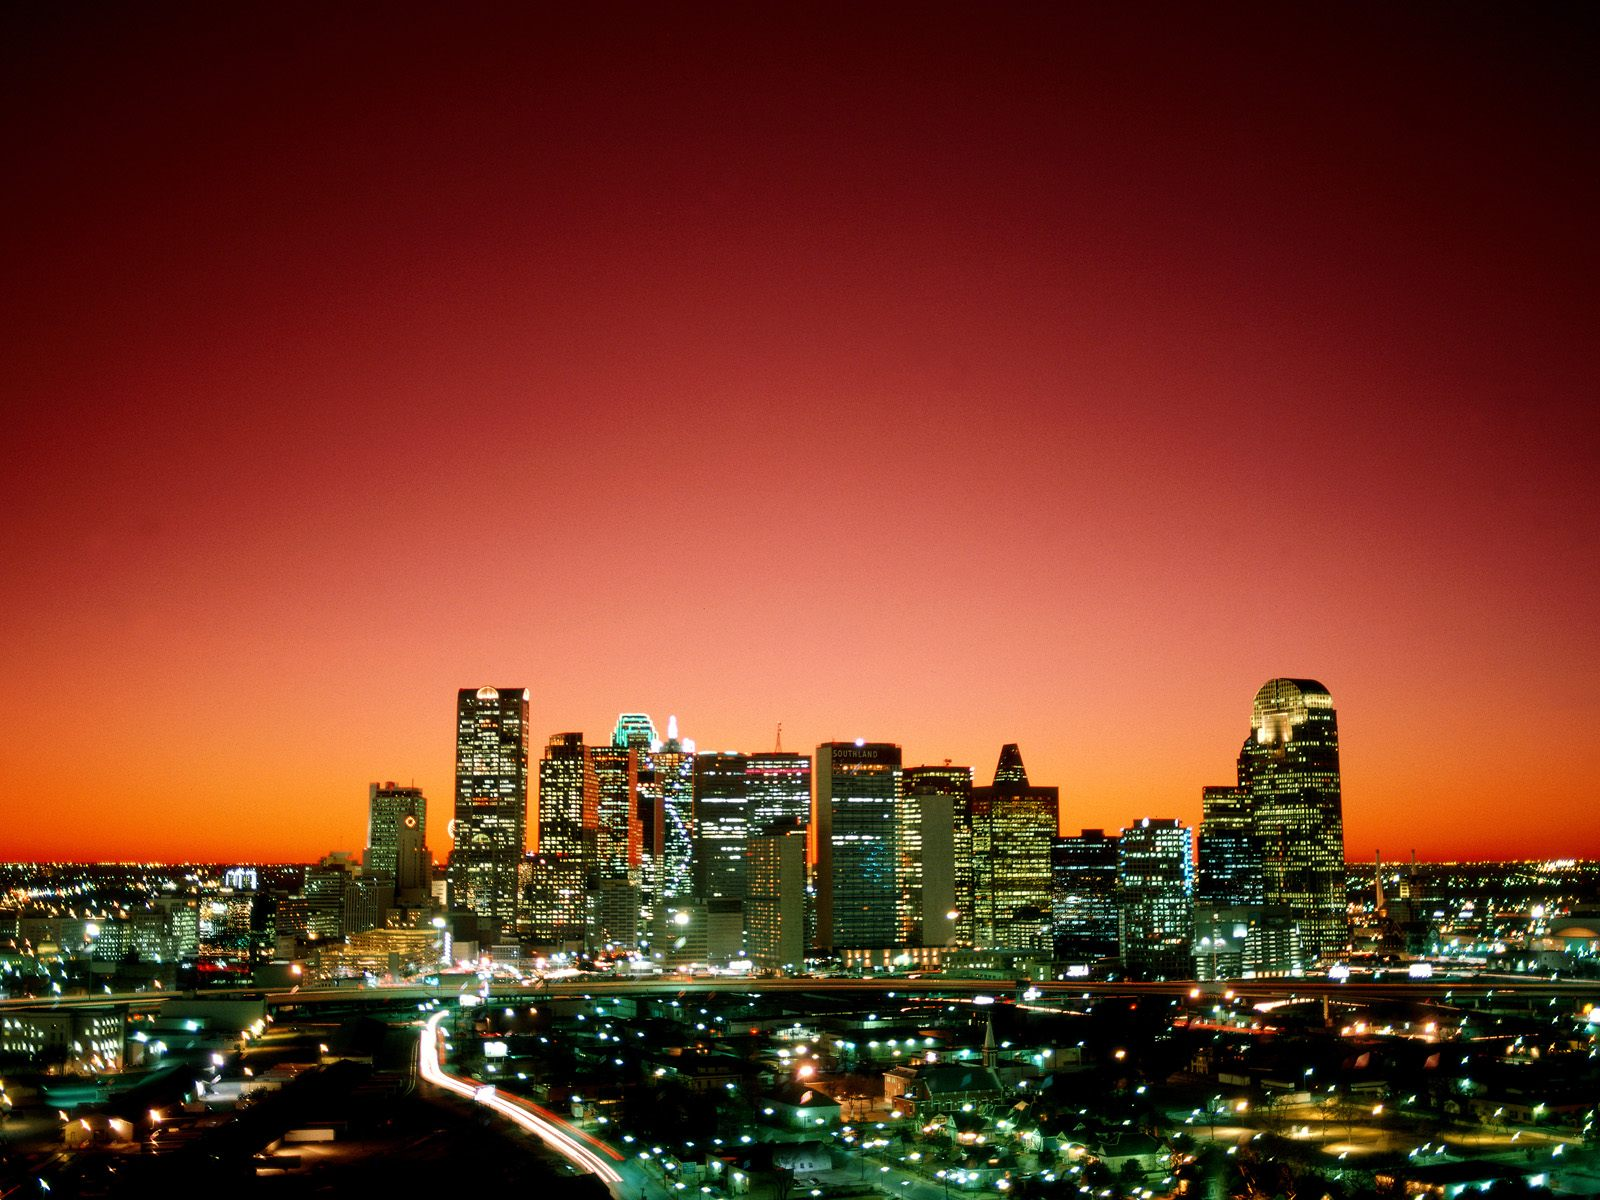 downtown dallas hd wallpapers - photo #17